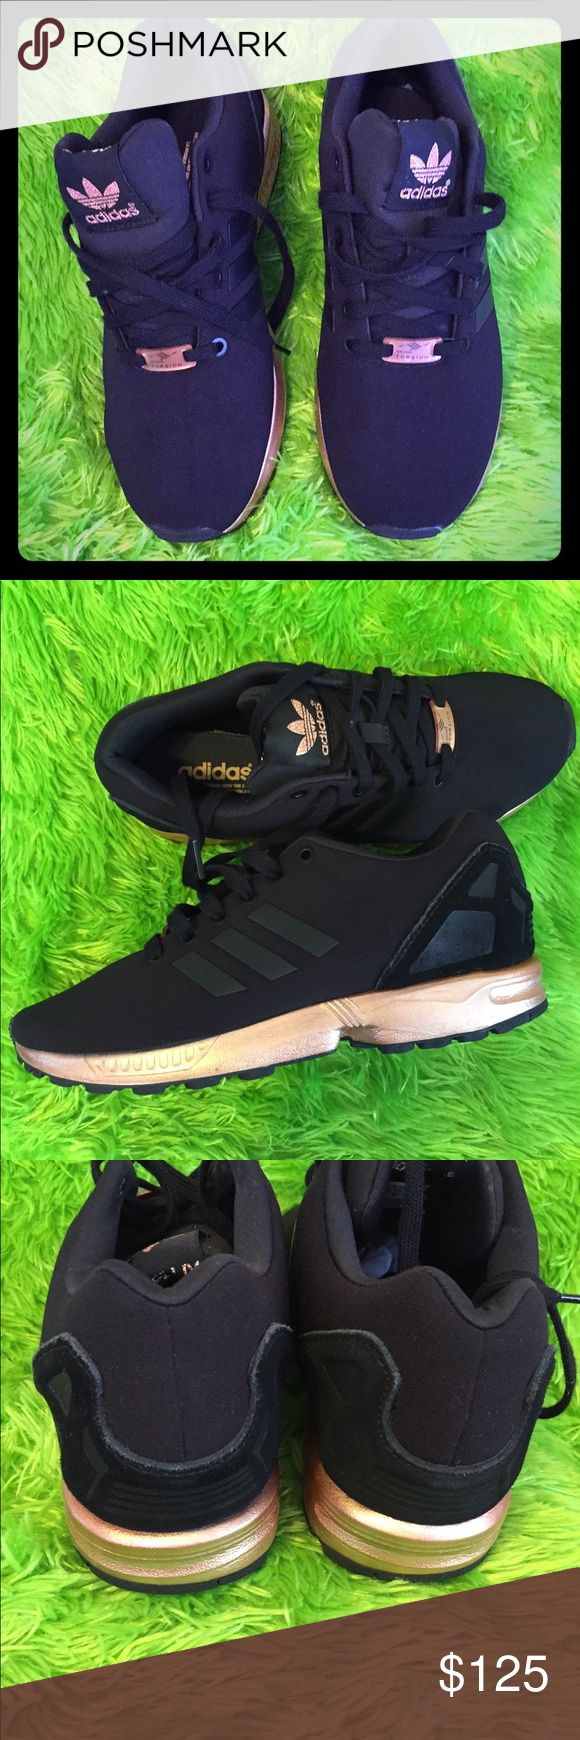 Adidas shoes Women's Adidas torsion  zx flux black copper Rose gold metallic NMD medal s78977..size 8.5..used twice..perfect condition is like new..no flaws..no box.. adidas Shoes Athletic Shoes